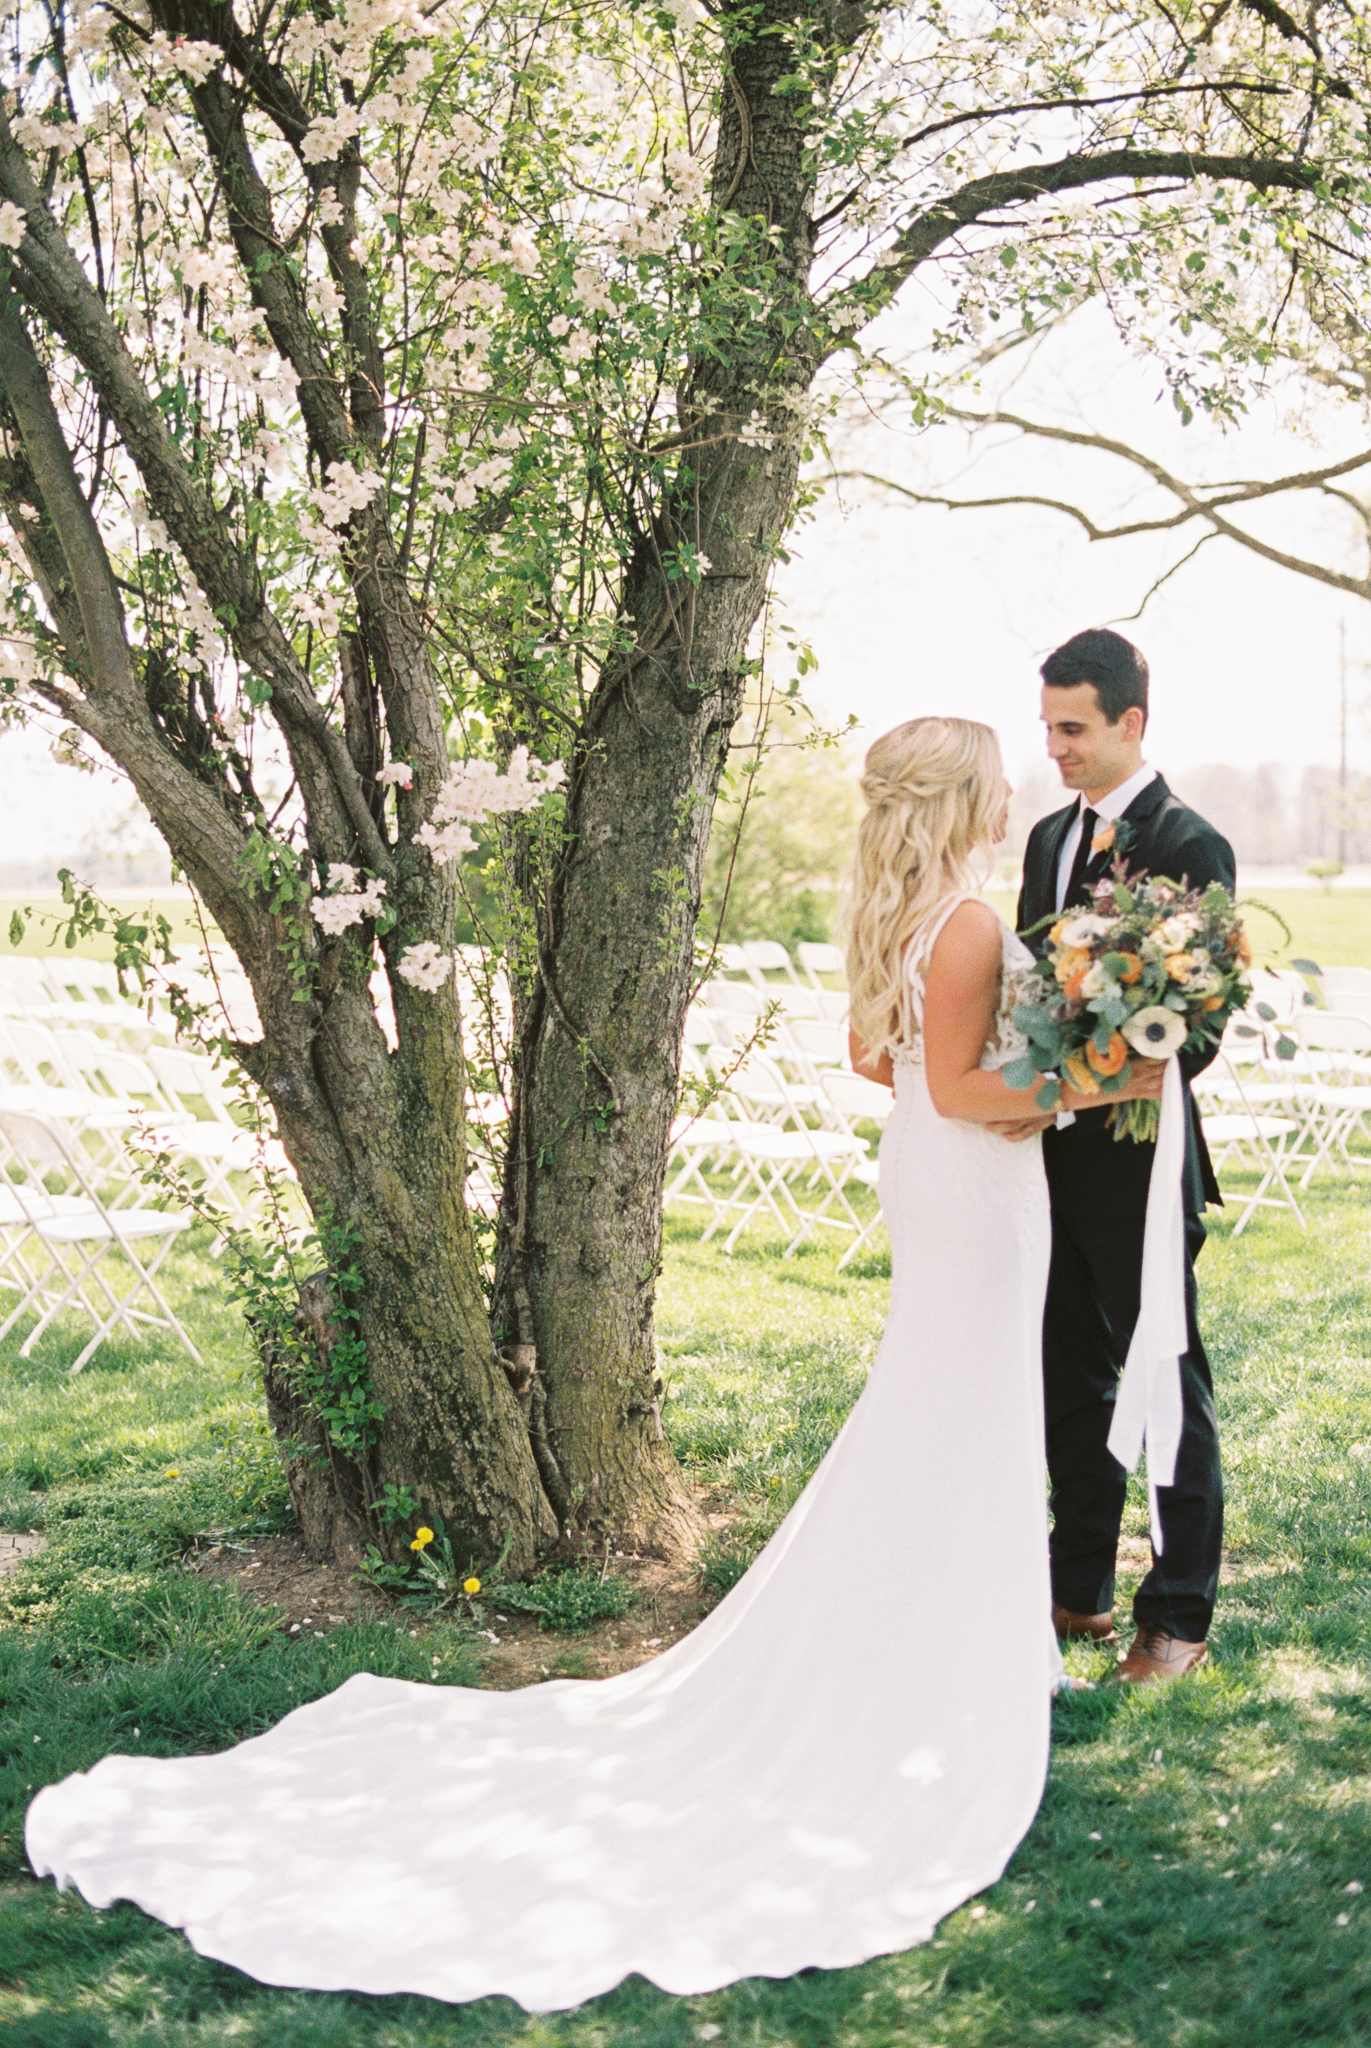 Dayton_CIncinnati_Film_Wedding_Portrait_Photographer-76.jpg